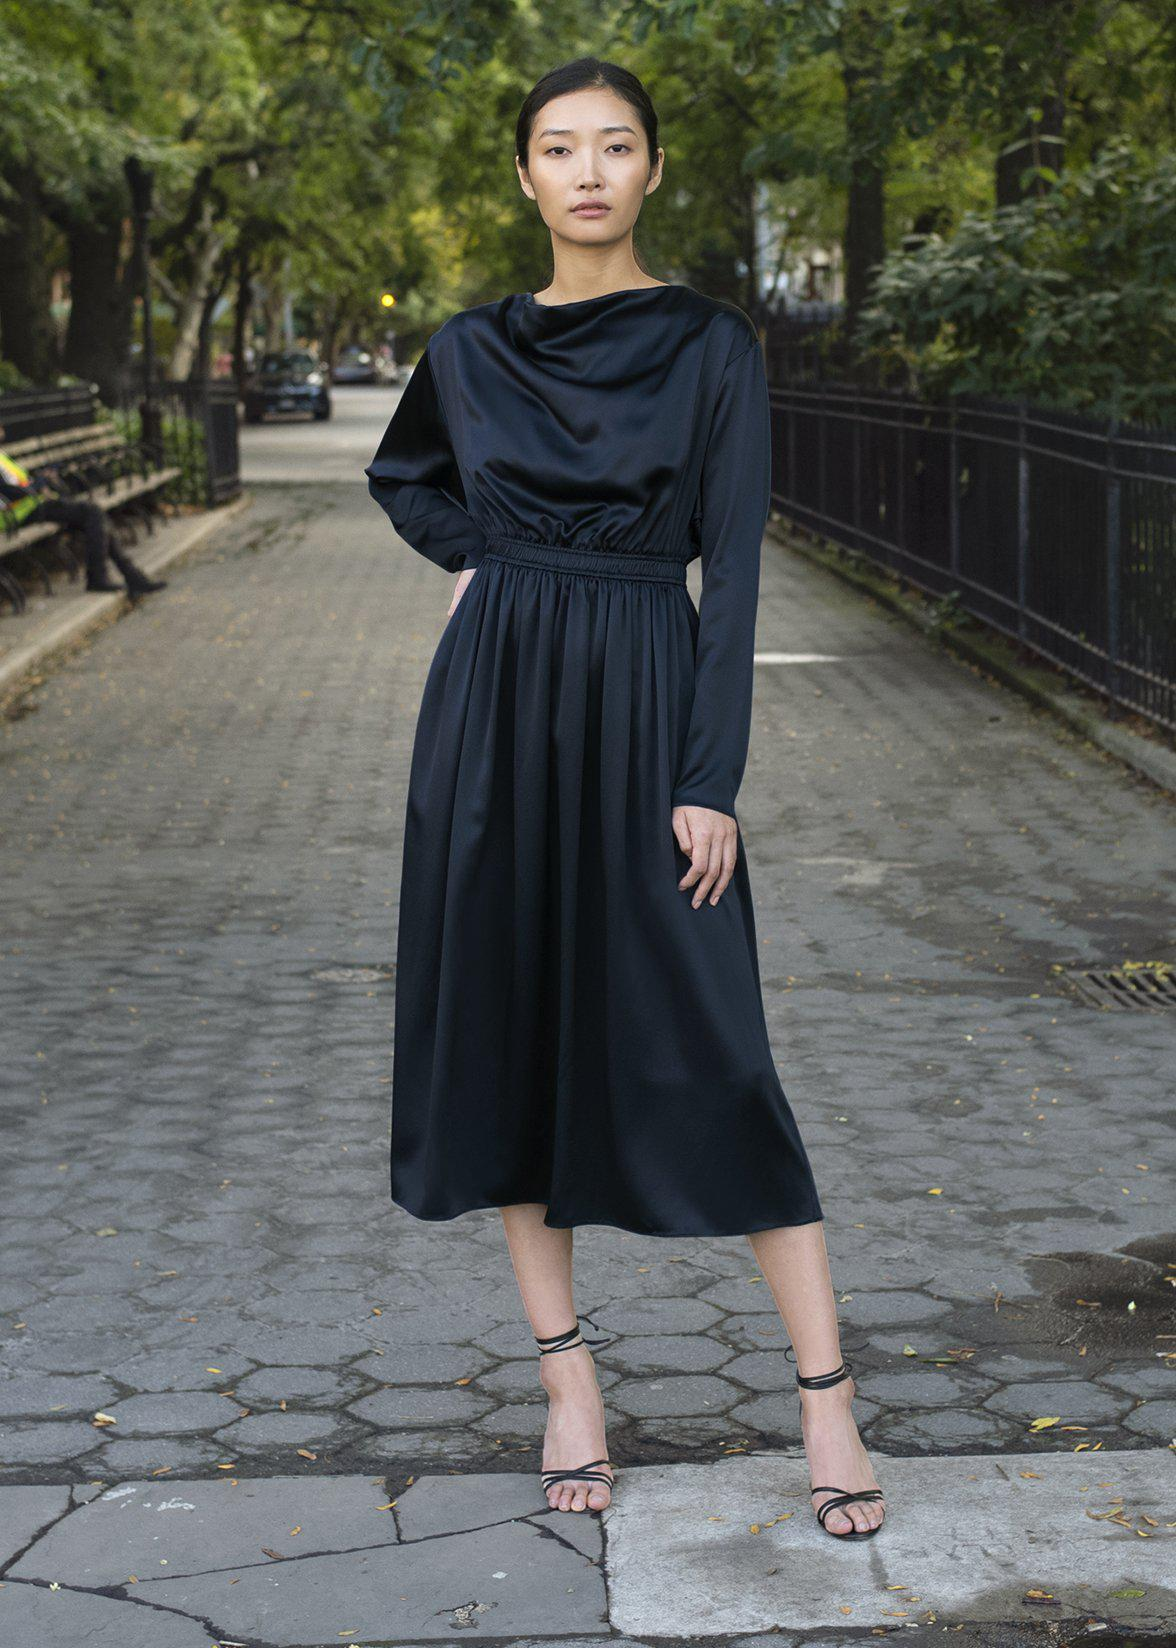 COWL NECK DRESS IN SILK CHARMEUSE 5